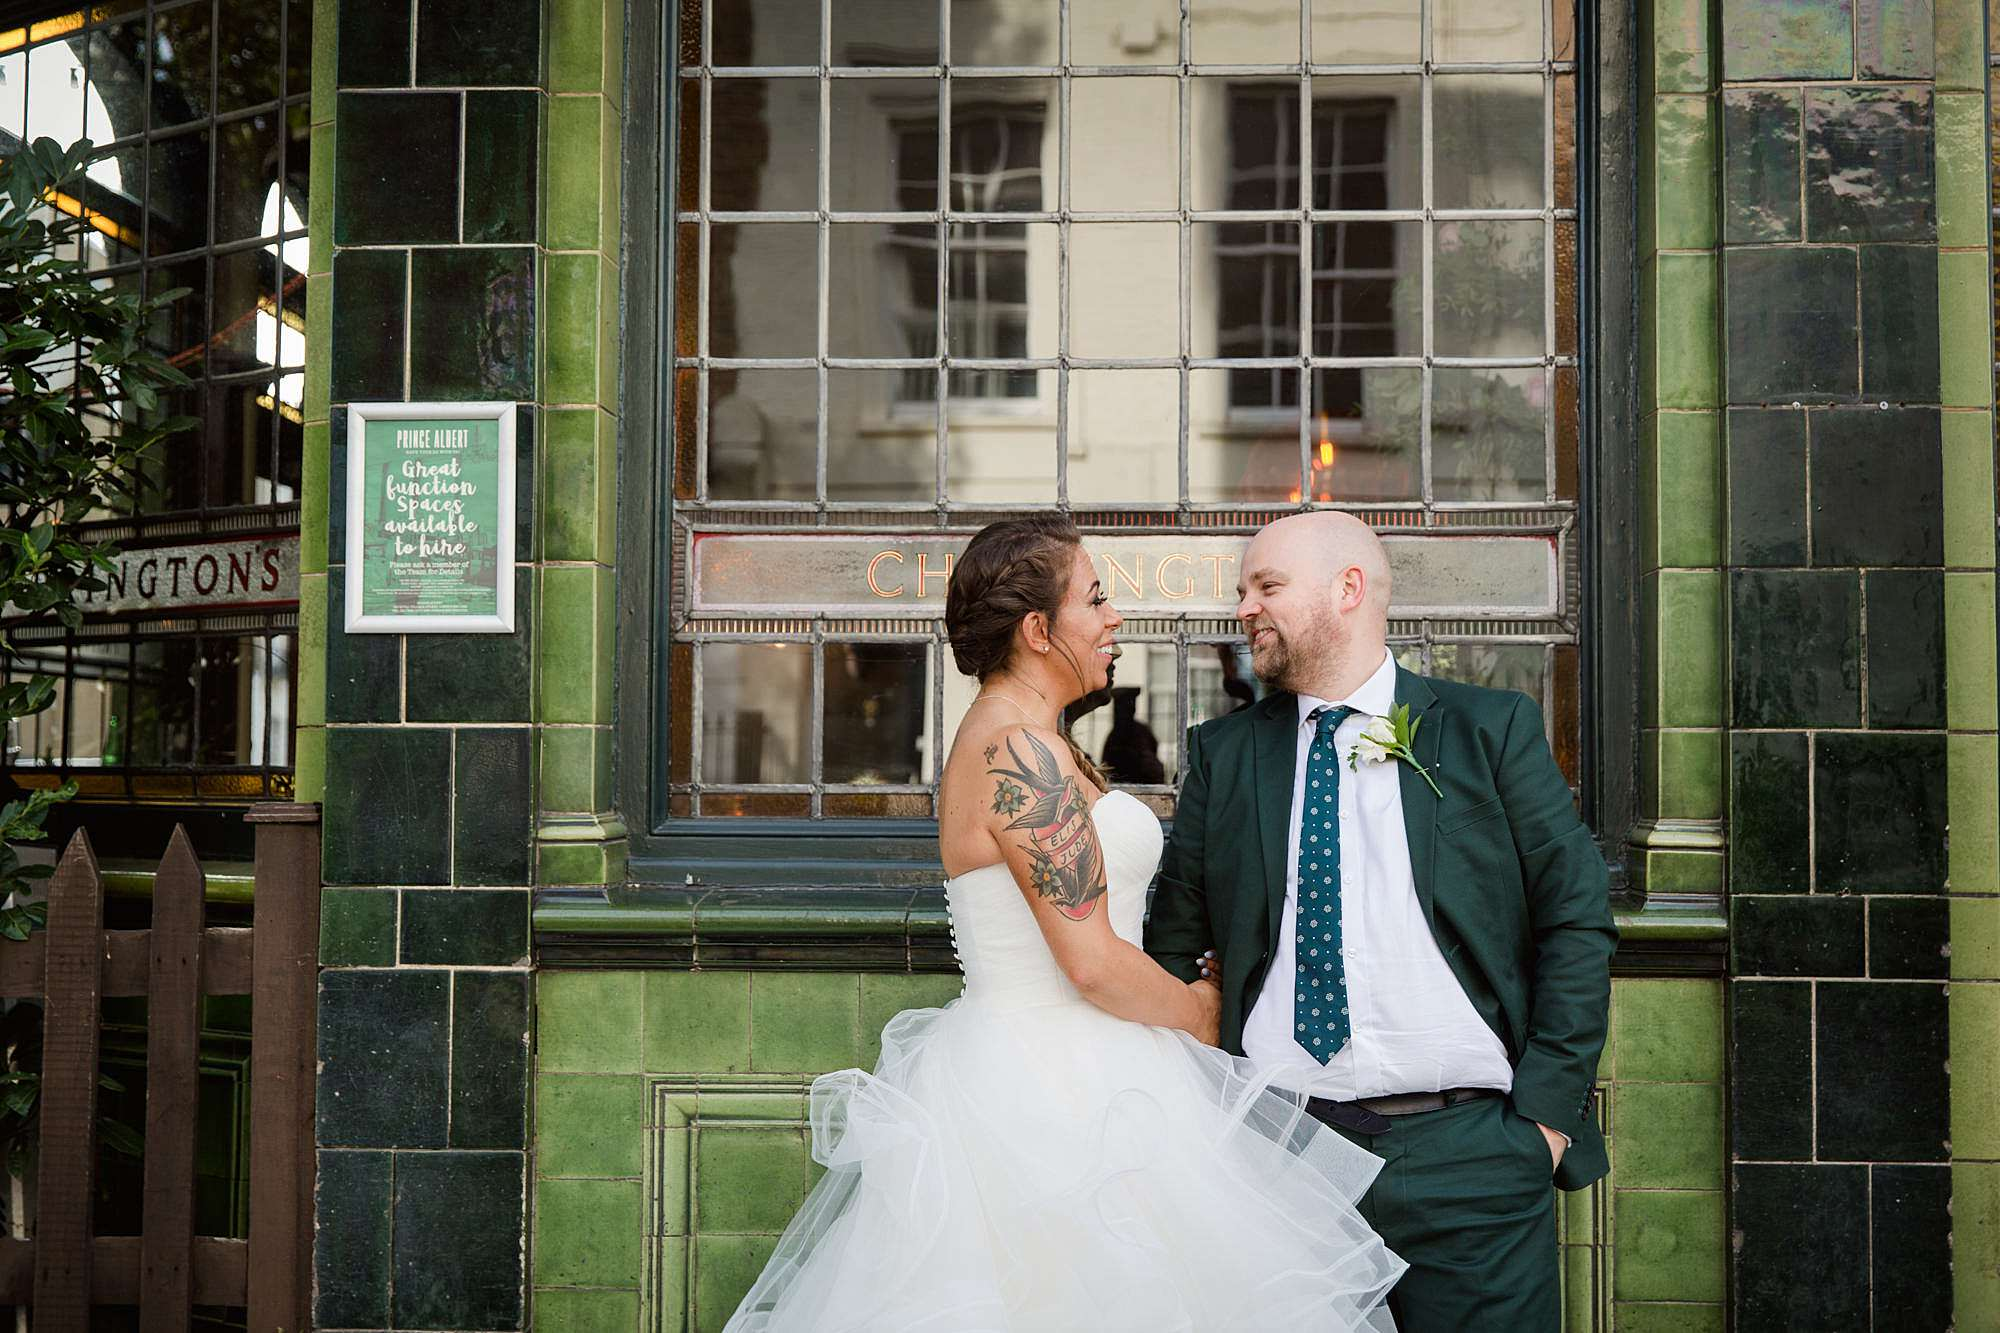 Prince albert camden wedding bride and groom chat outside pub